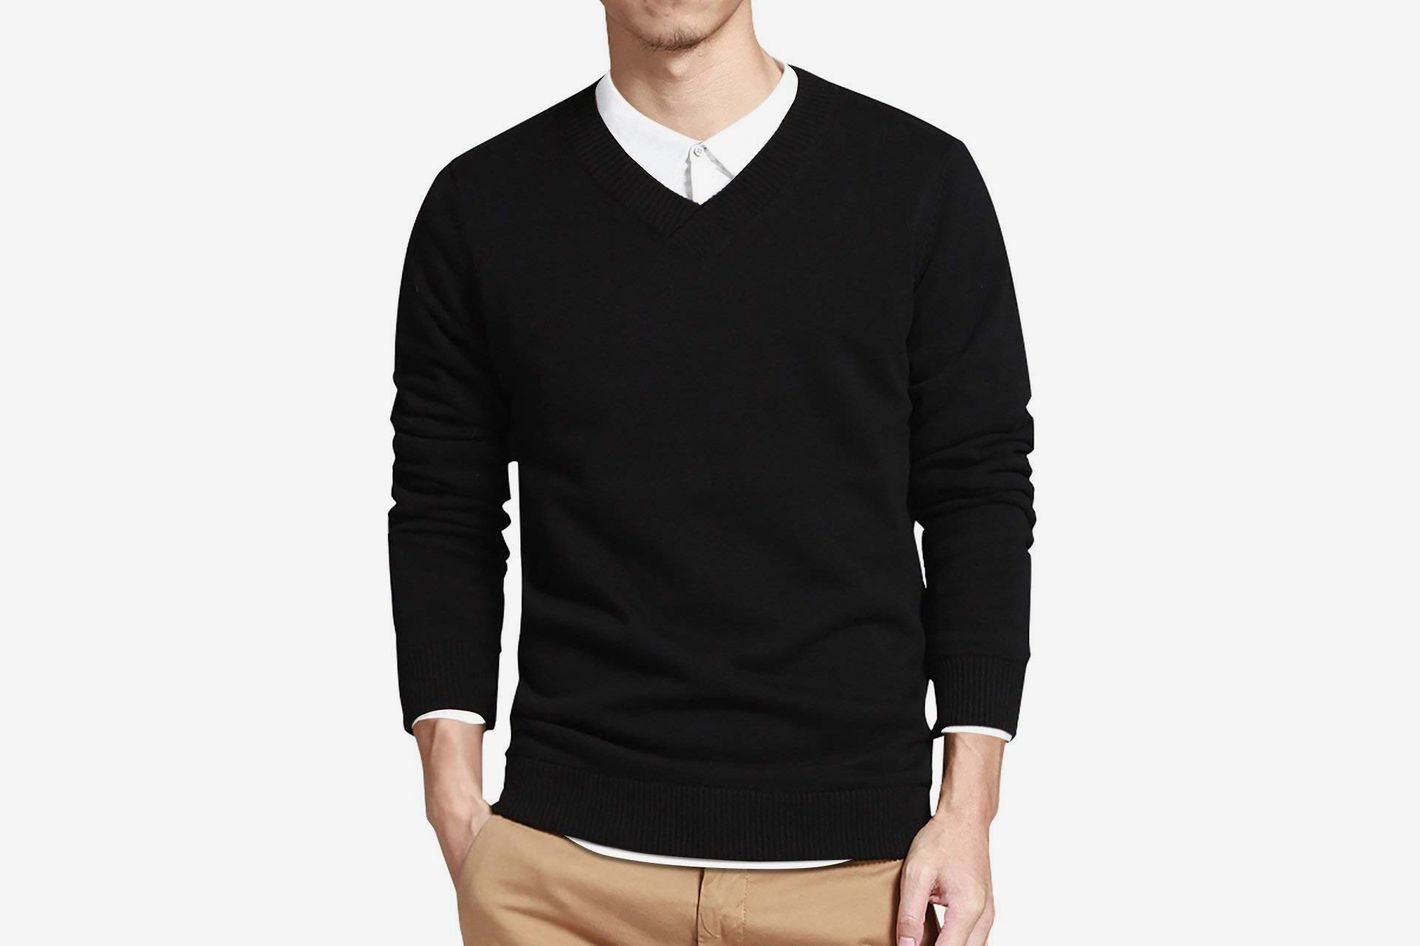 LTIFONE Mens Slim Comfortably Knitted Long Sleeve V-Neck Sweaters 47b868e79